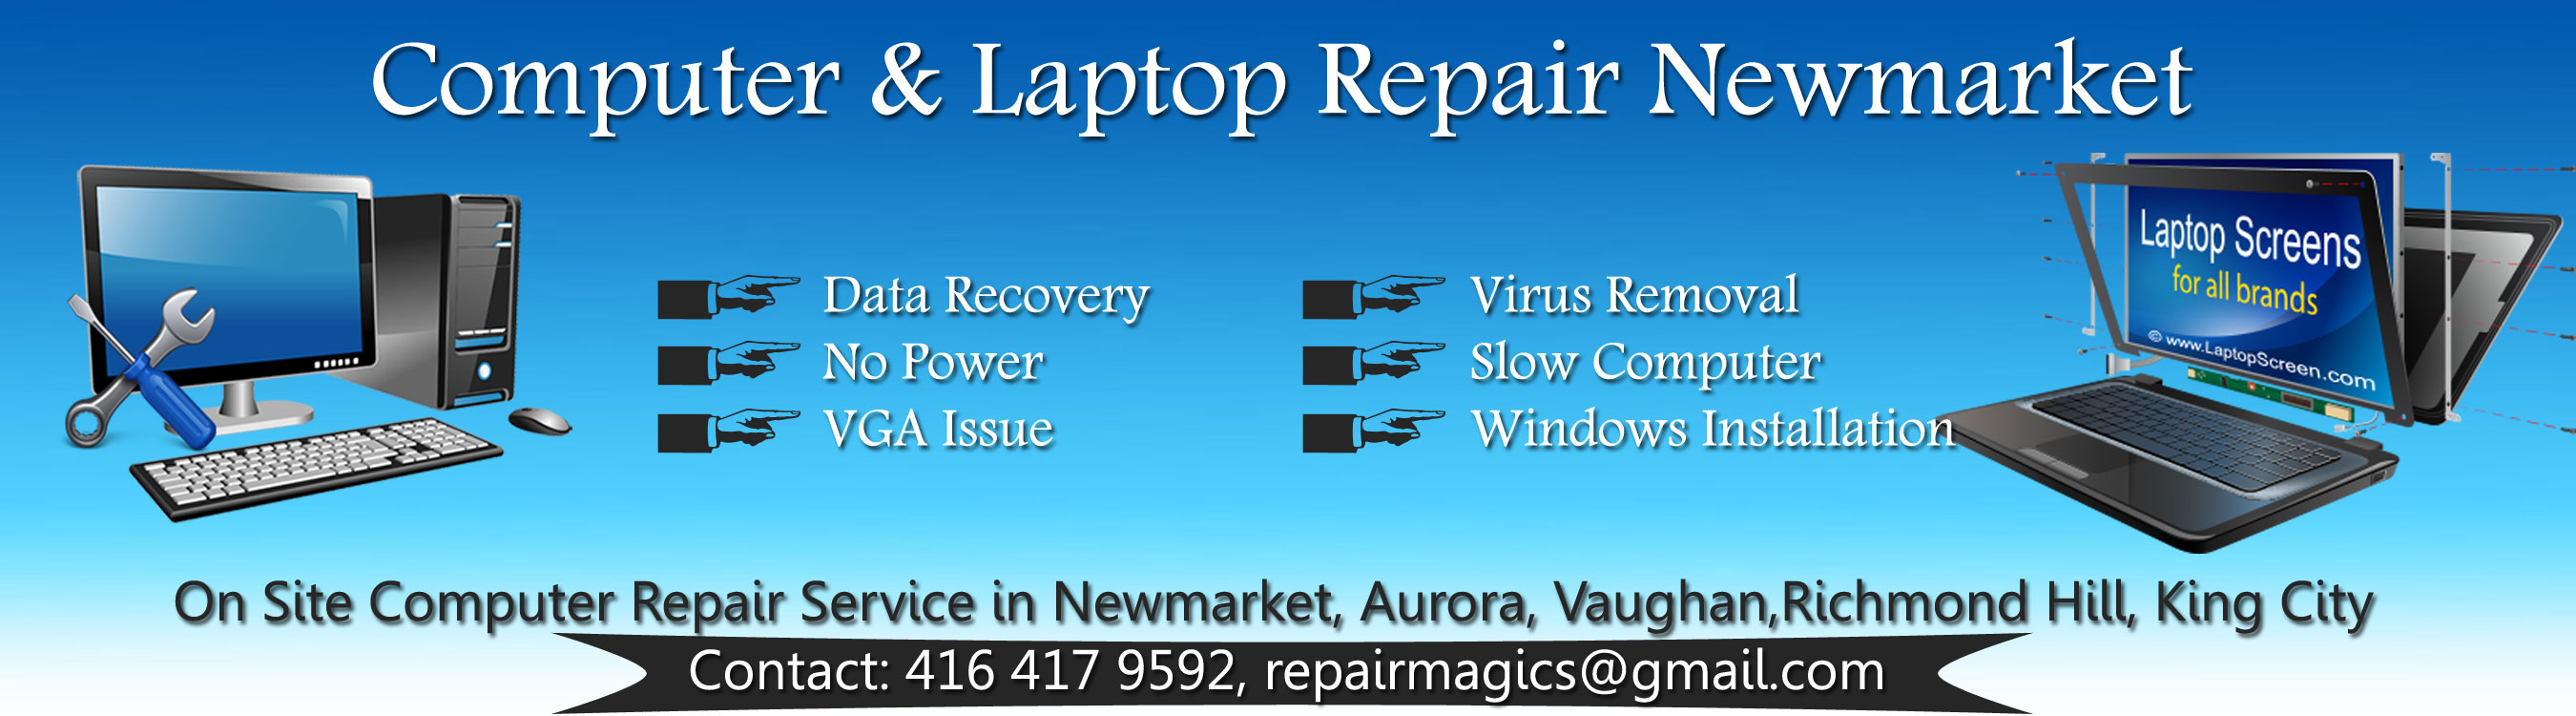 Laptop Computer Repair Newmarket